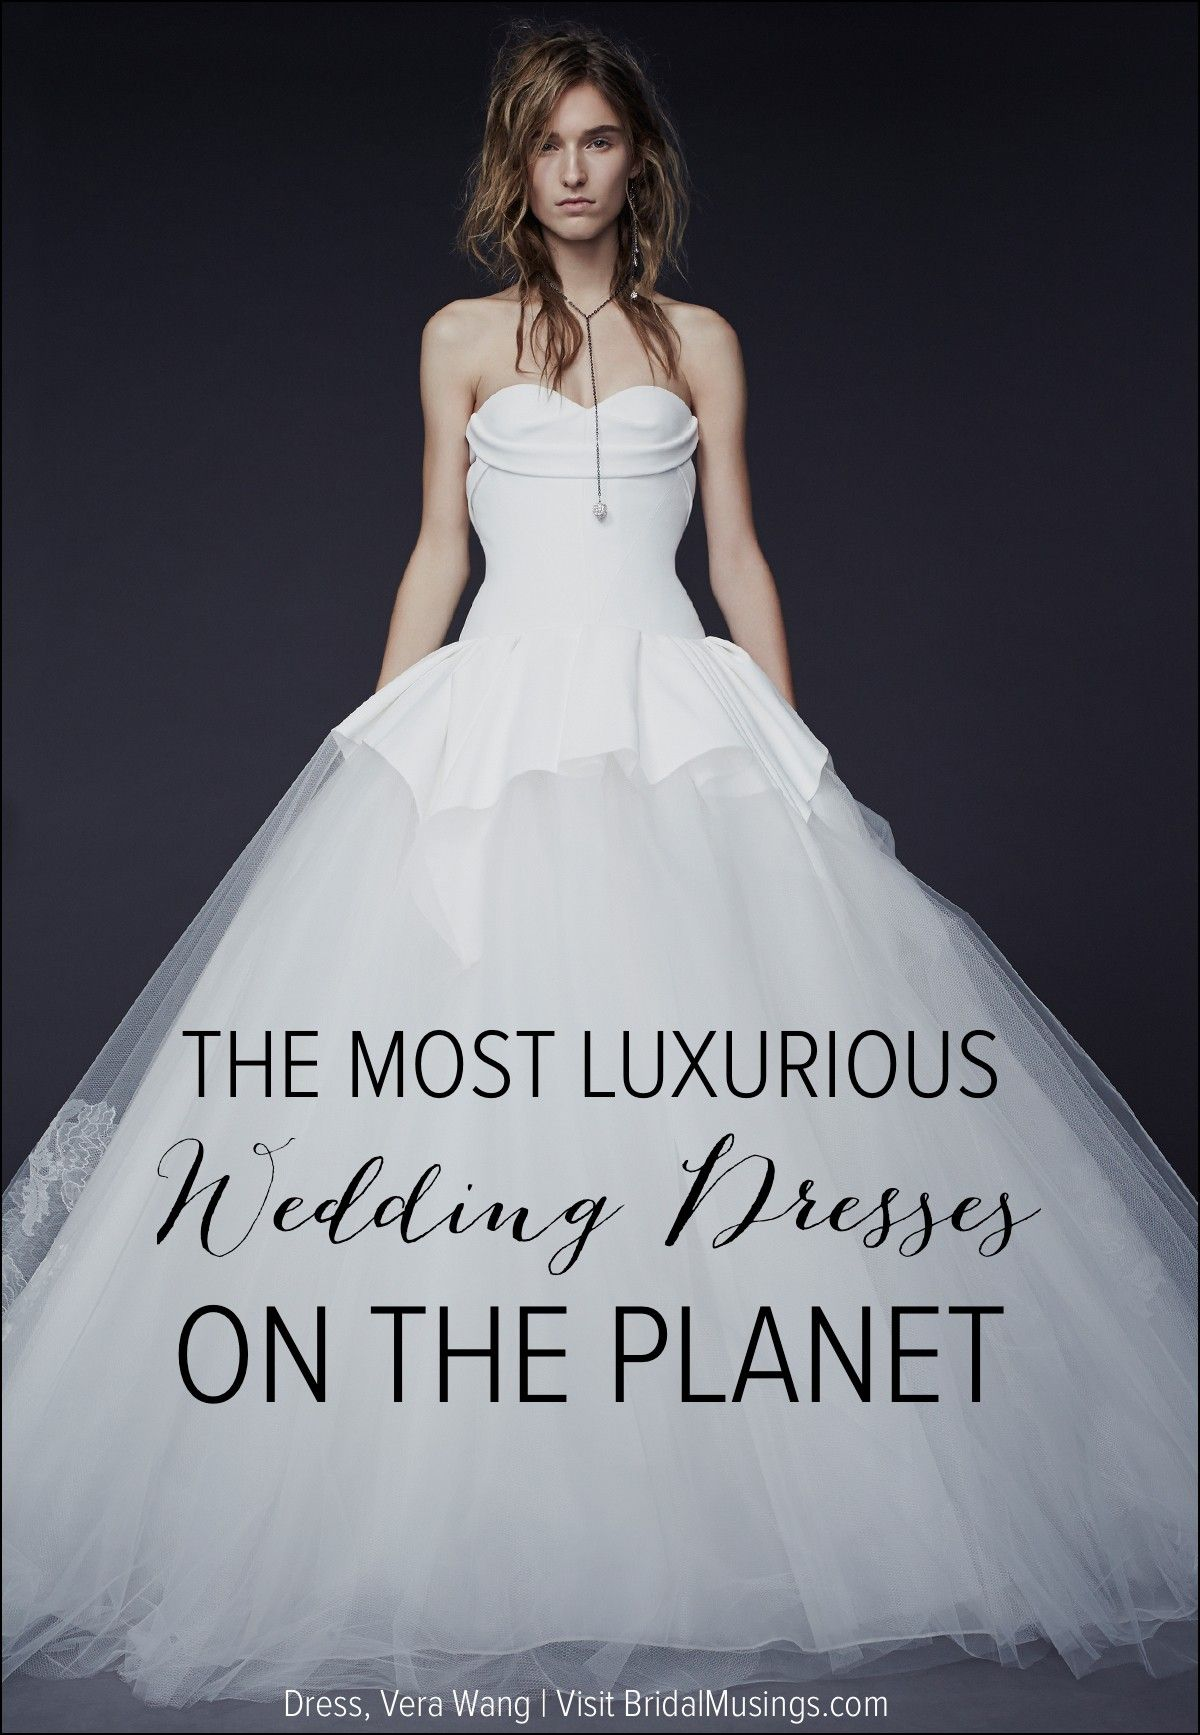 Vera wang bridal gown prices dresses and gowns ideas pinterest